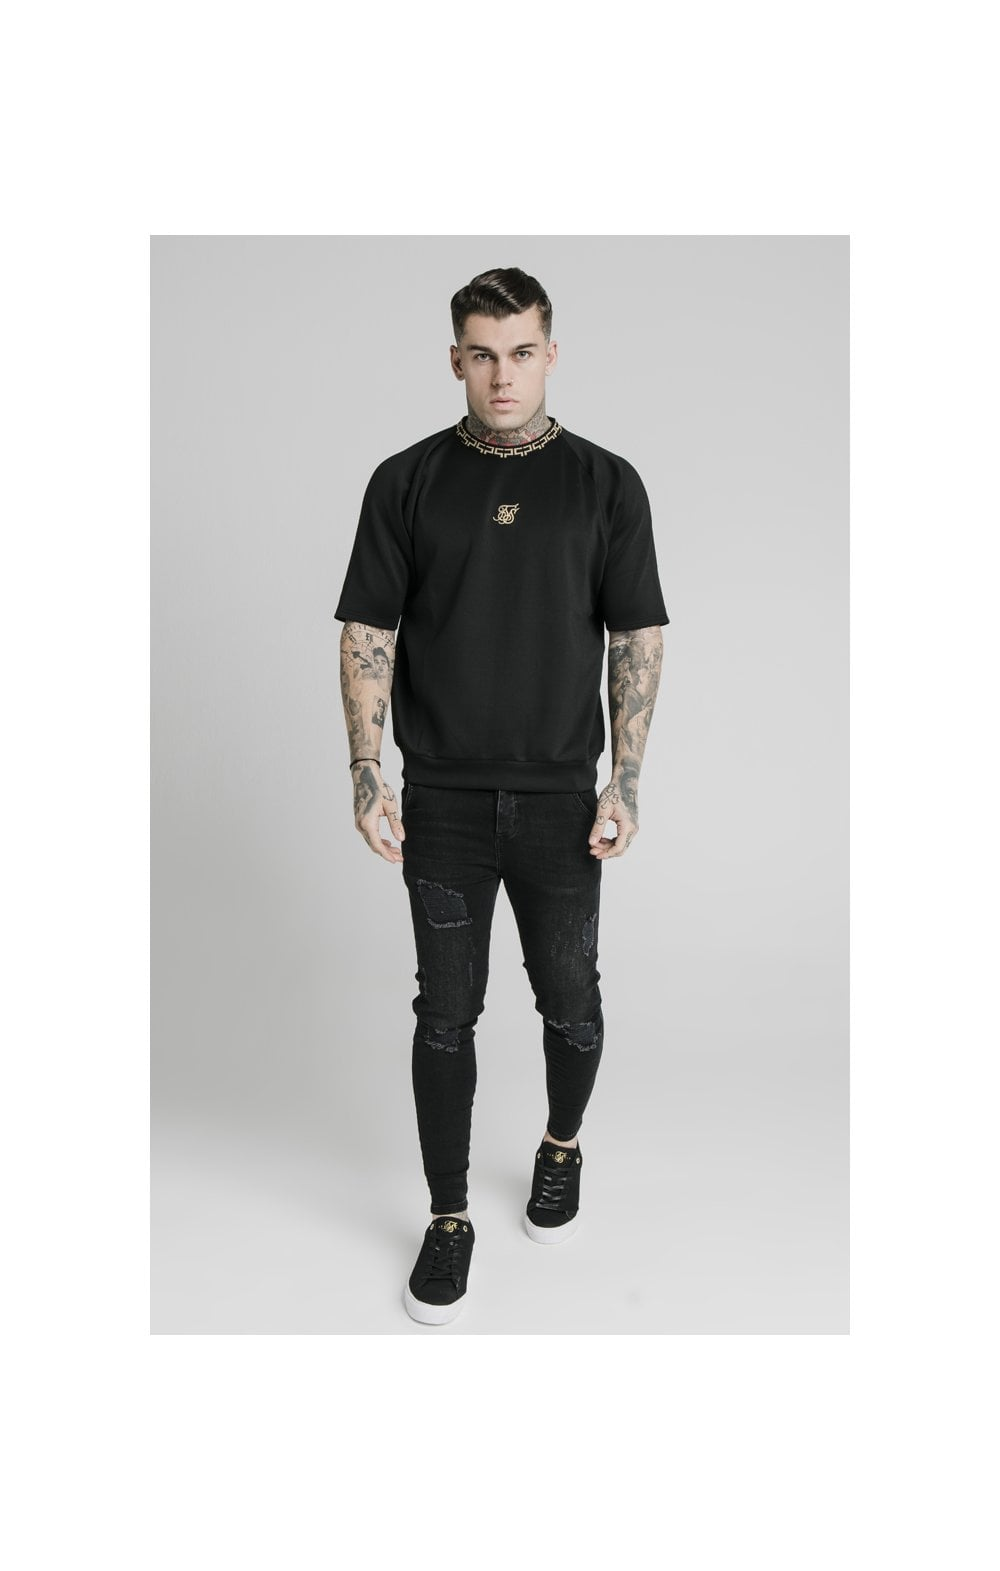 SikSilk S/S Chain Rib Raglan Sweater - Black (4)